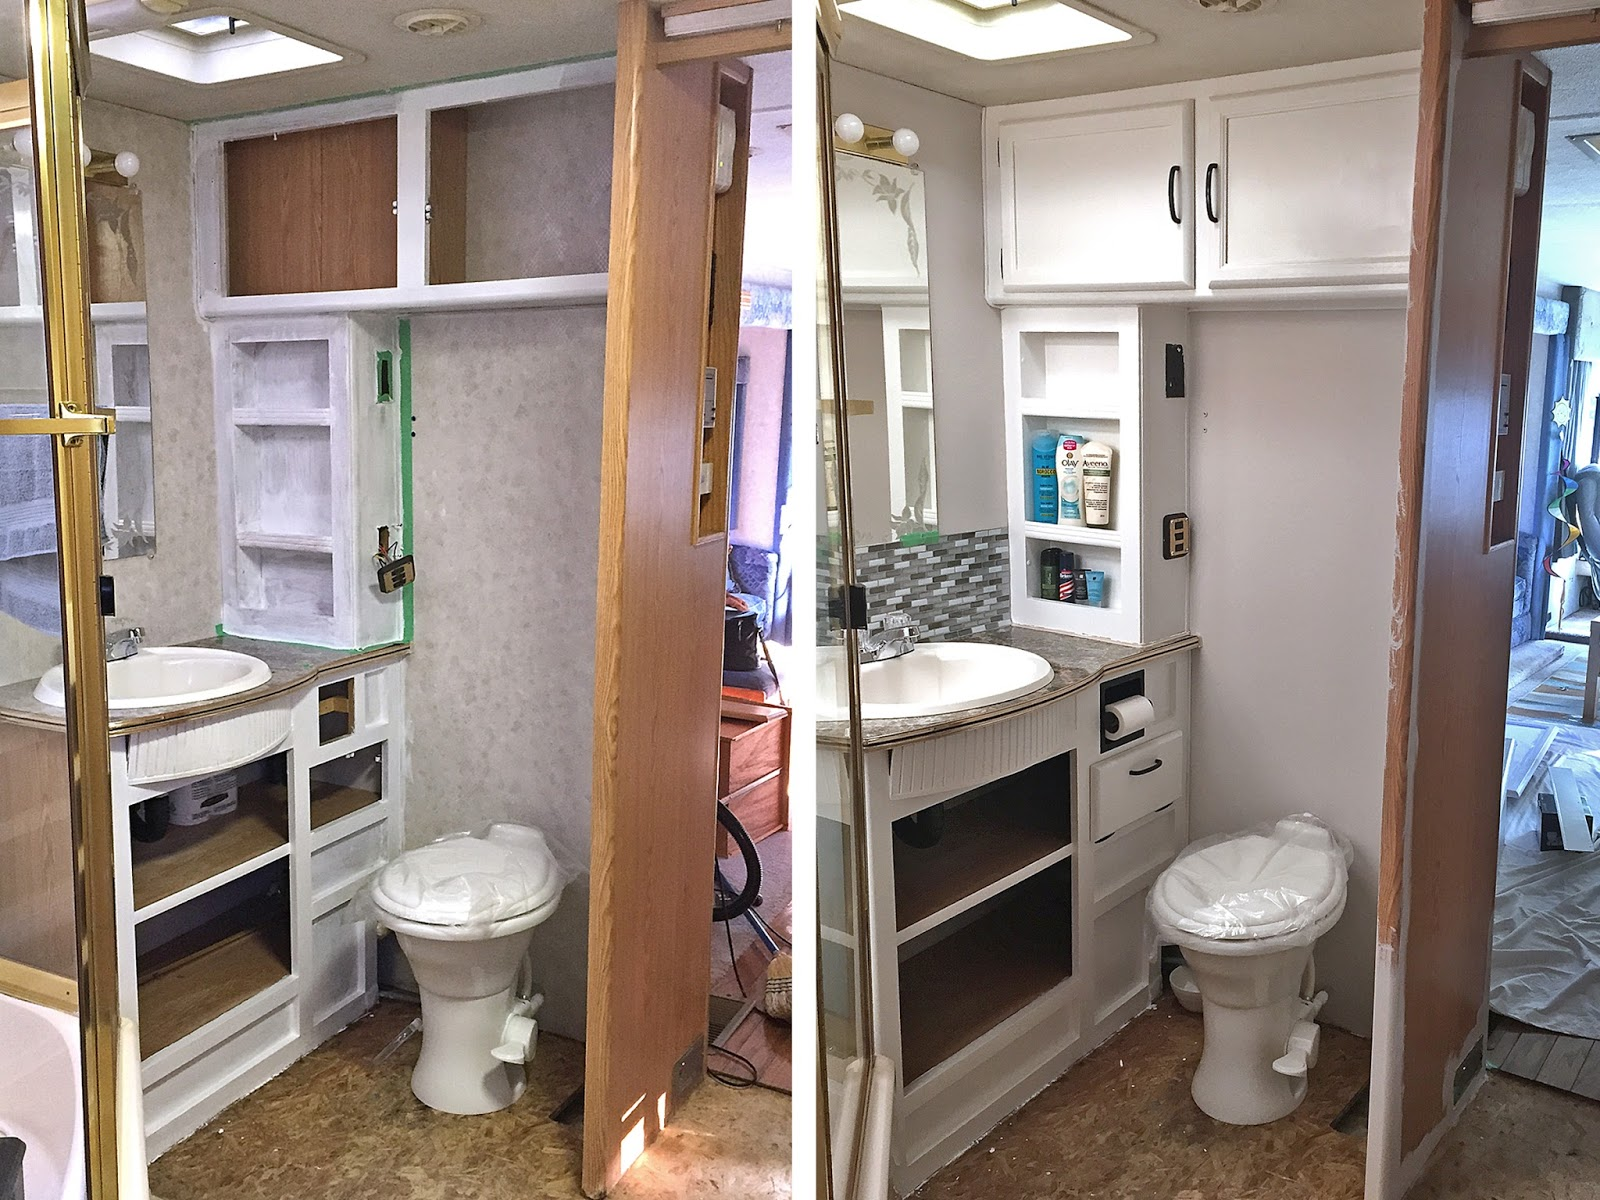 What Happened Next RV Renovation The Bathroom Edition - 80s bathroom remodel